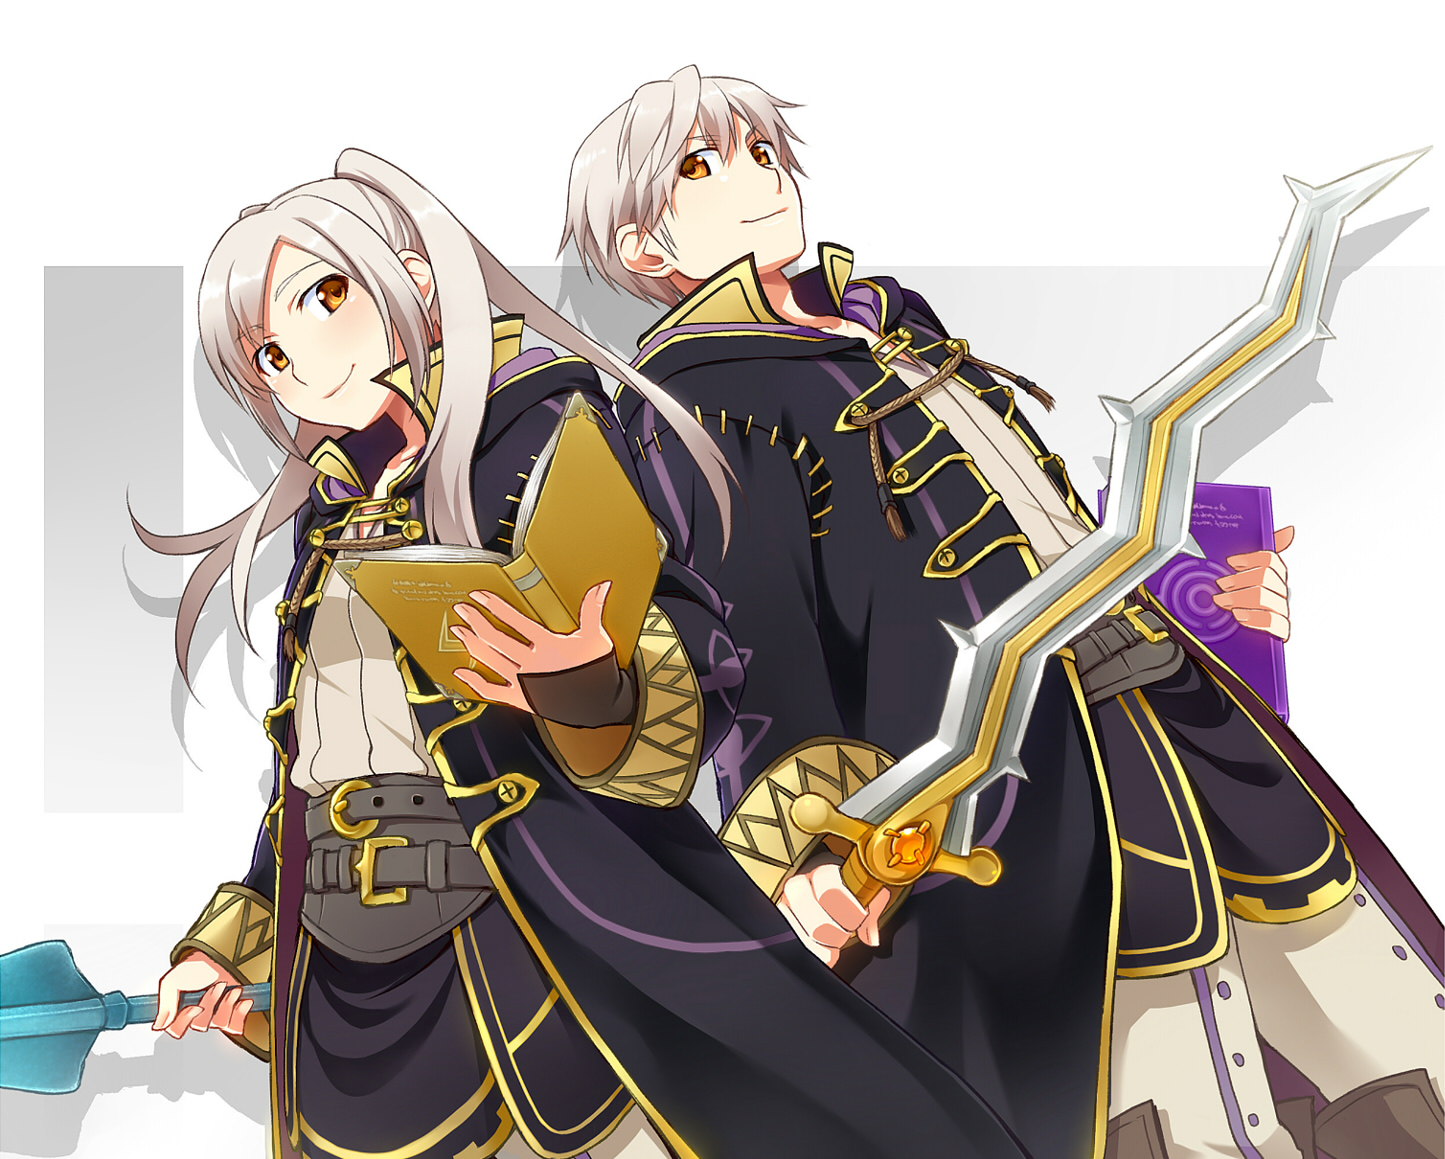 Robin And Robin Fire Emblem Know Your Meme For 3ds/wii u) is robin (rufure/reflet in the japanese version). robin and robin fire emblem know